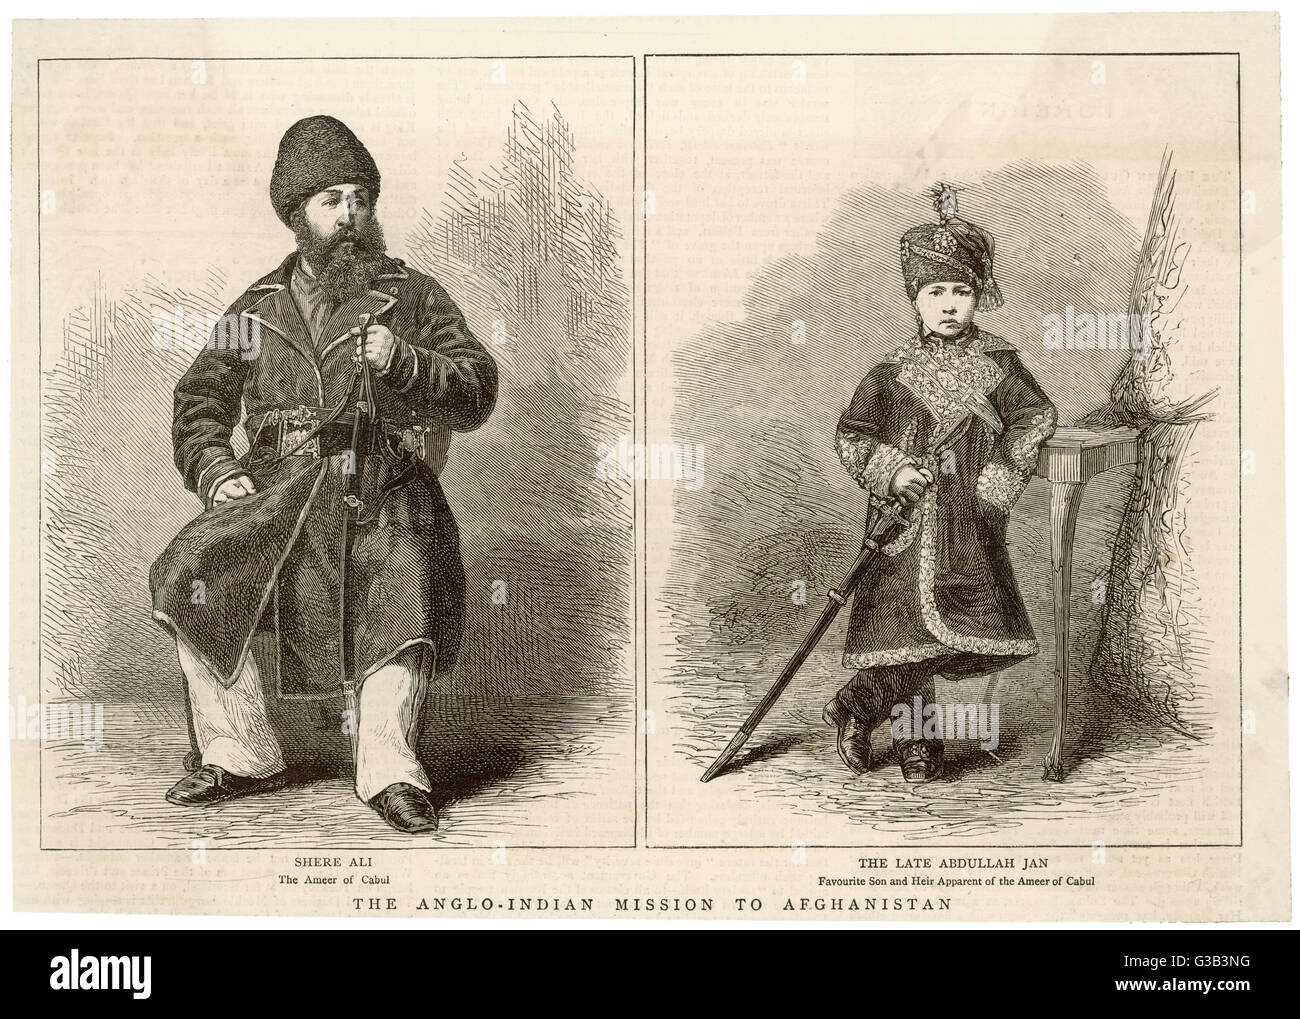 SHER (SHERE) ALI, AND HIS LATE HEIR, ABDULLAH JAN Emir of Kabul from 1863-79,  son of Dost Mohammed. Friendly  relations - Stock Image